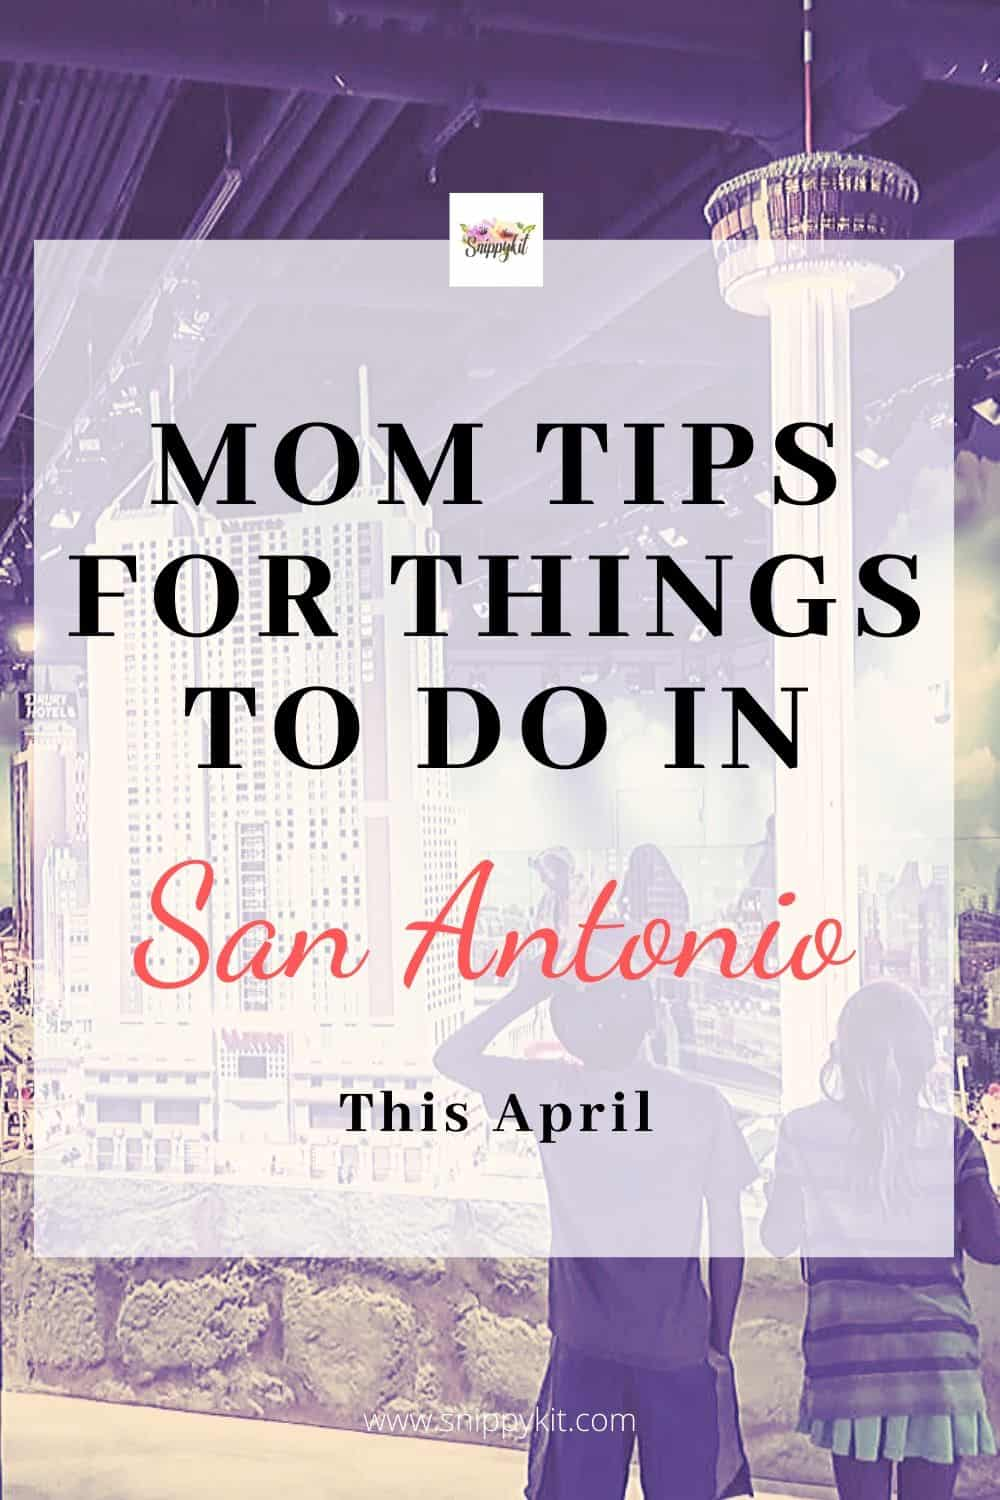 Discover all the fun family friendly things to do in San Antonio this April. You won't want to miss all these amazing events